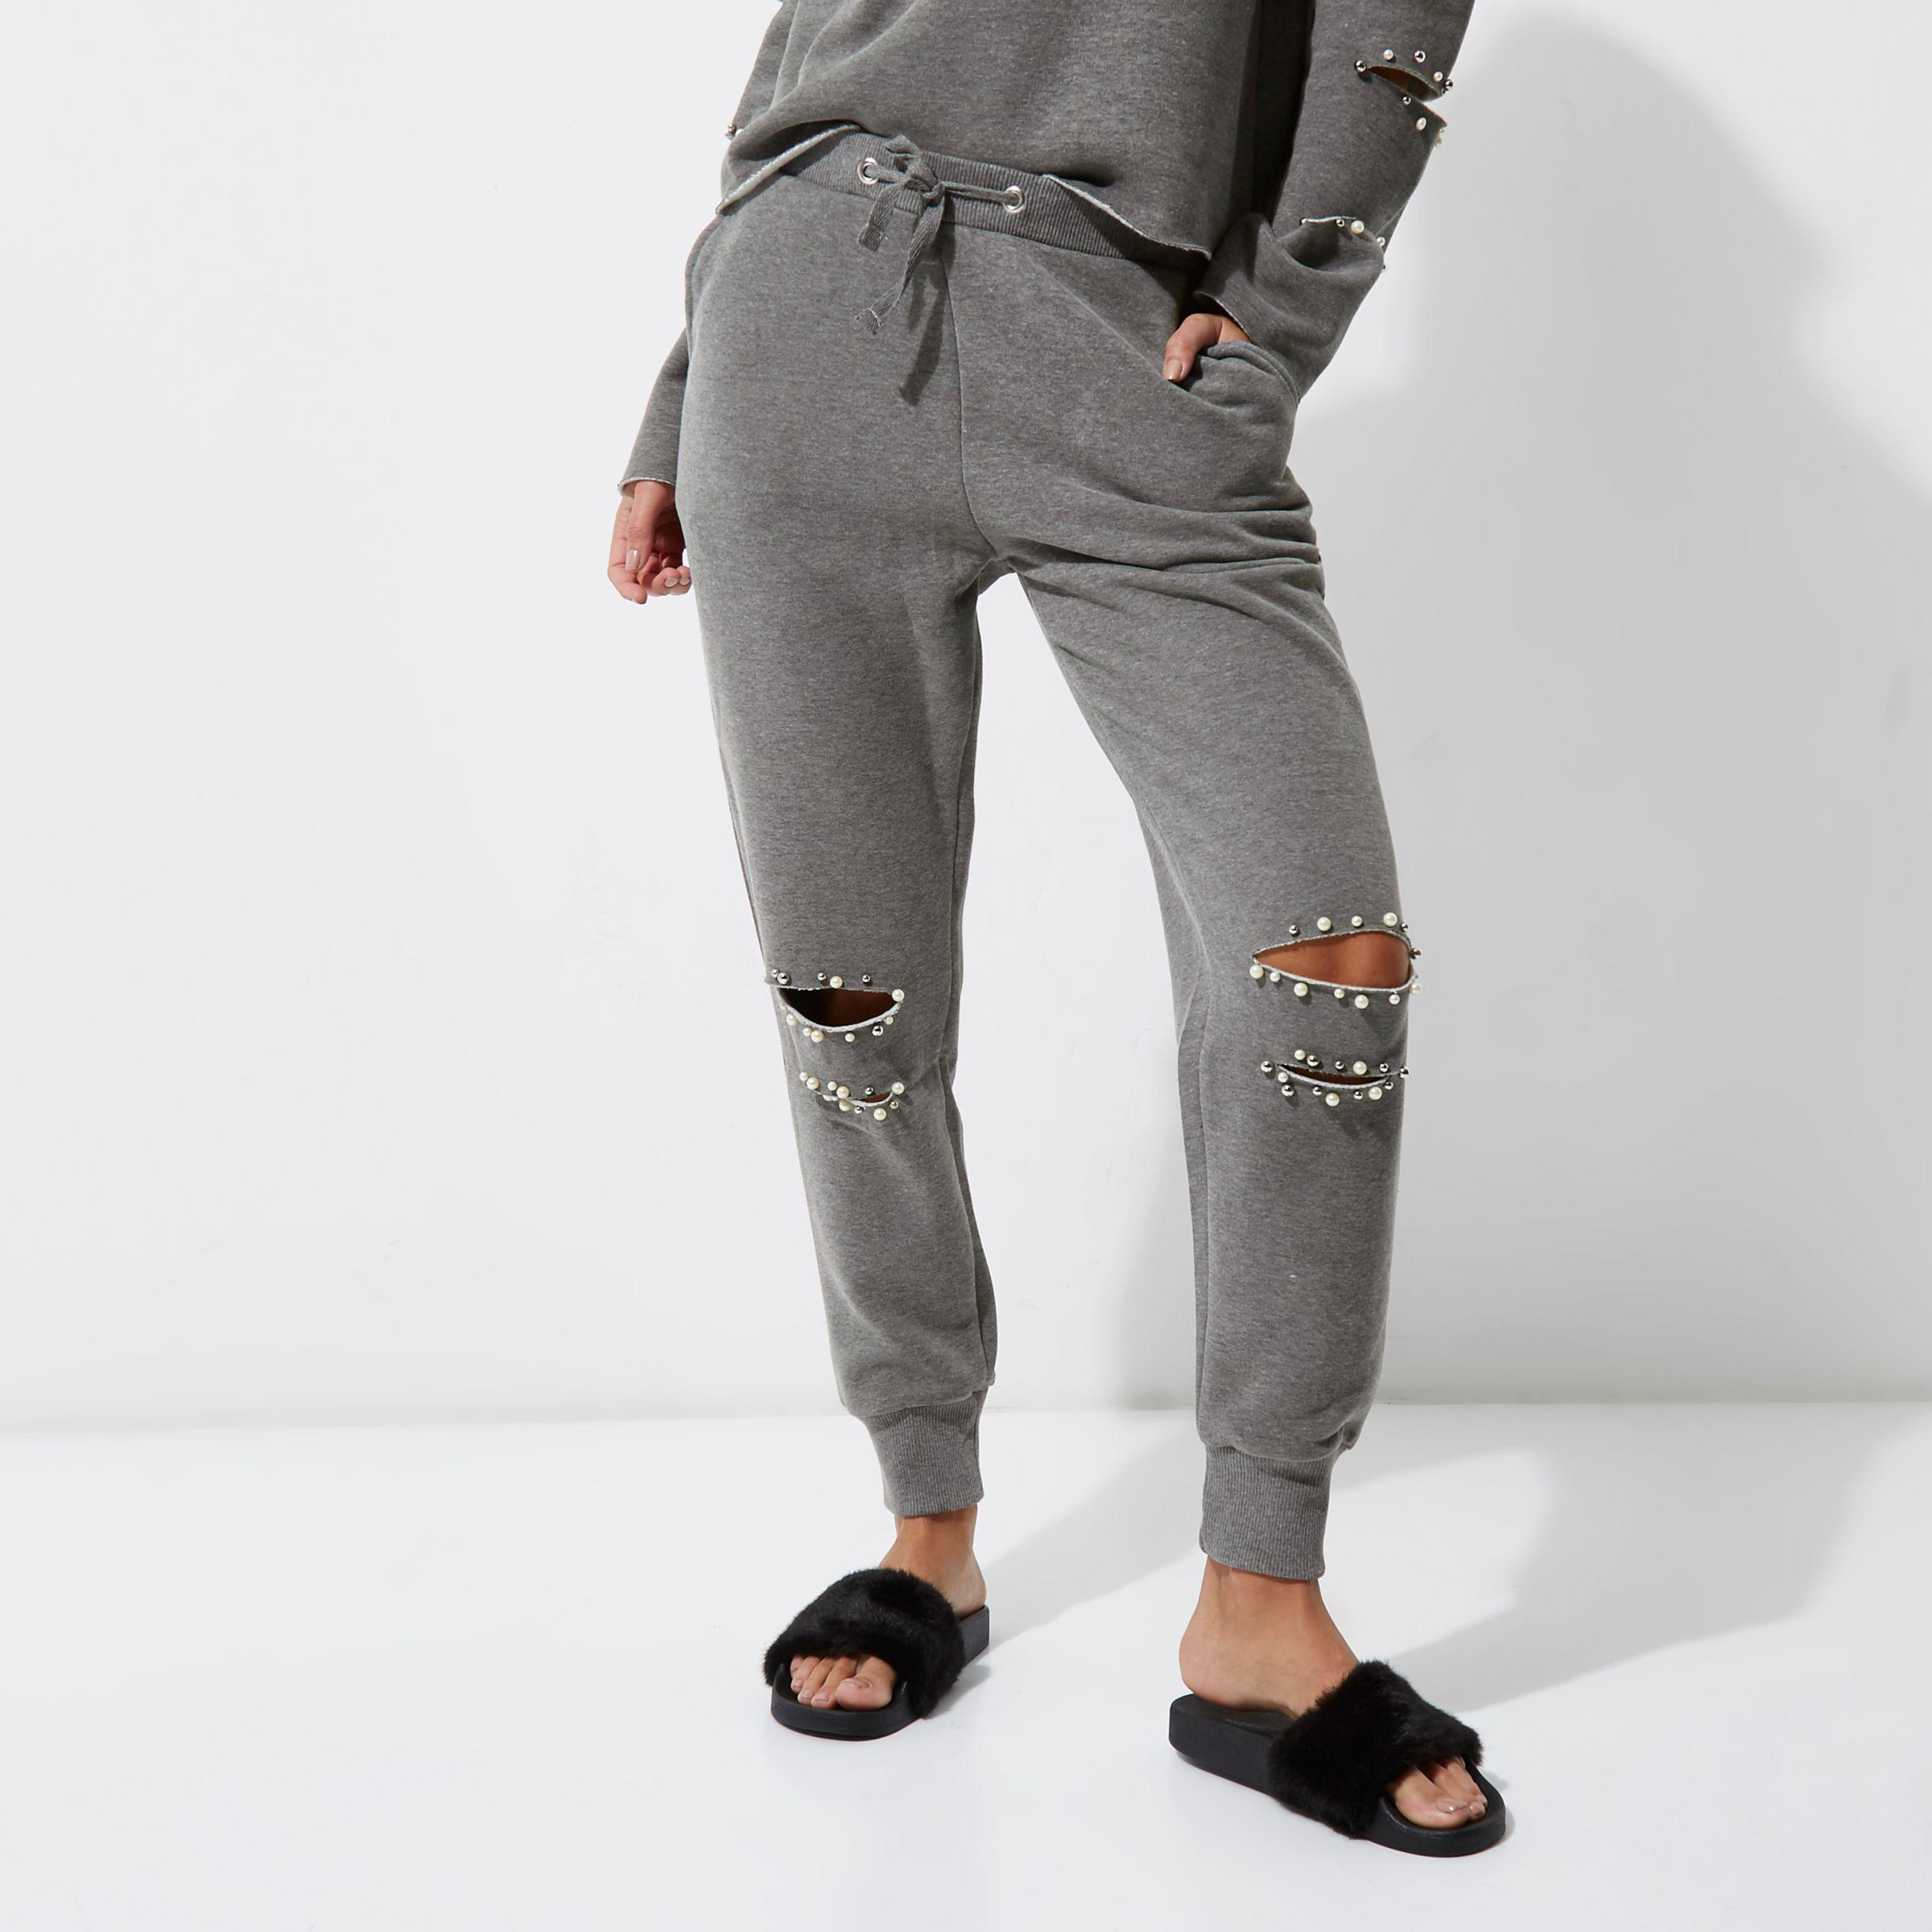 356a5526523388 River Island Grey Faux Pearl Ripped Knee Joggers in Gray - Lyst